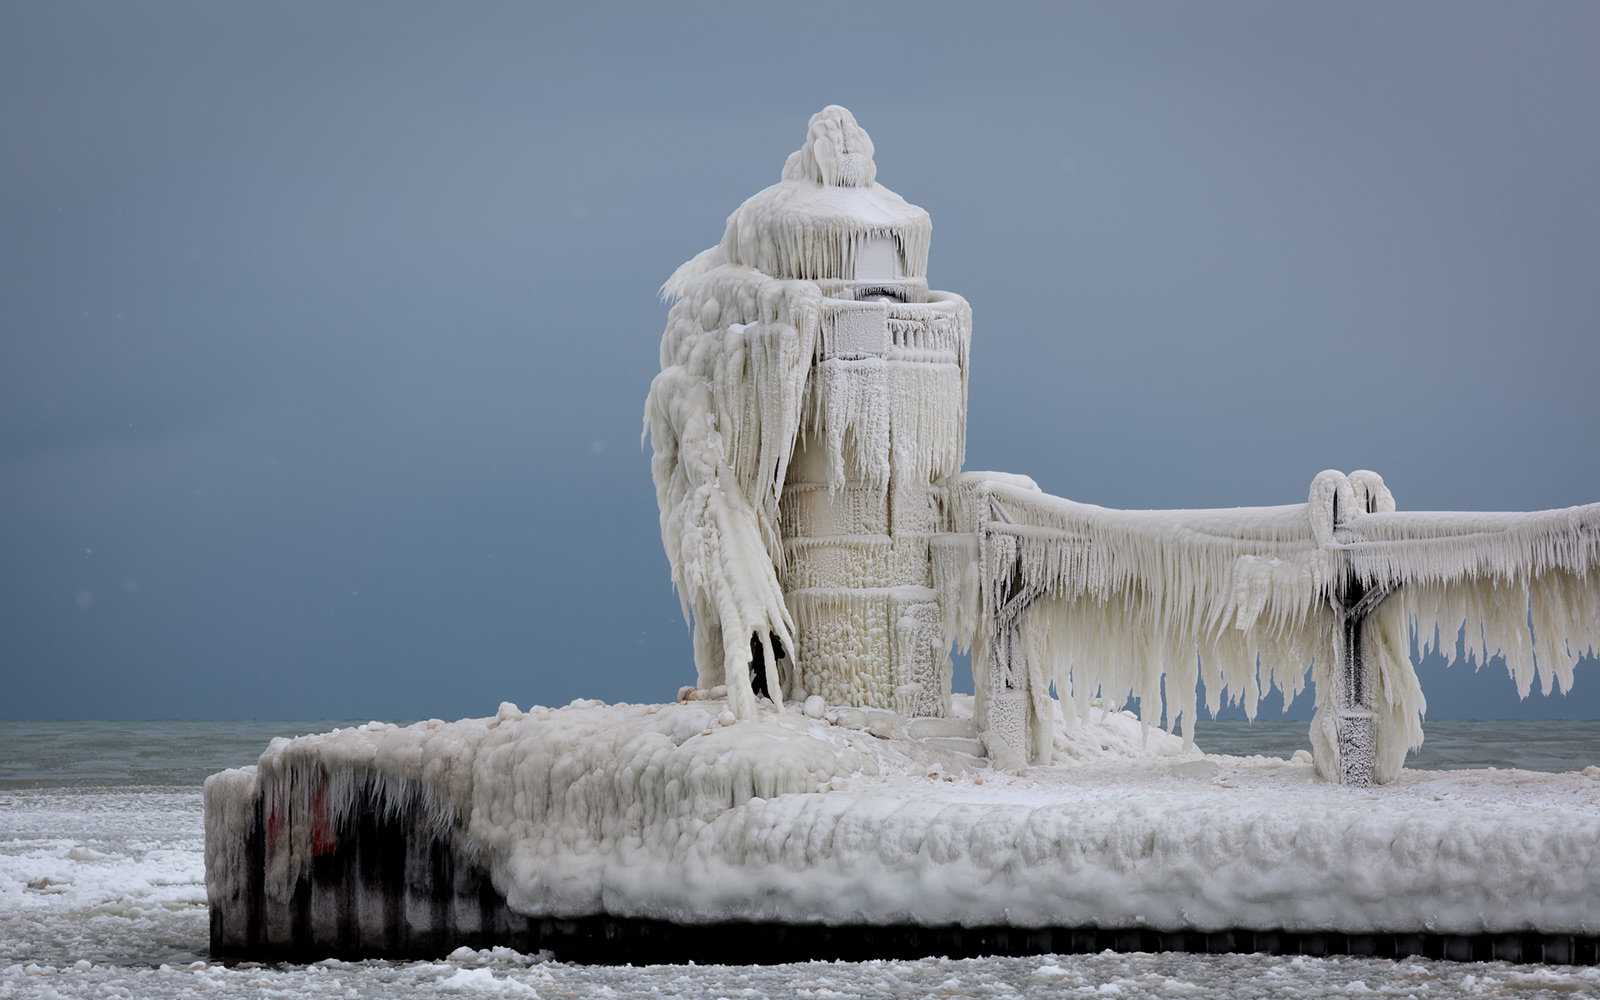 Frozen Lighthouse, St. Joseph, Michigan